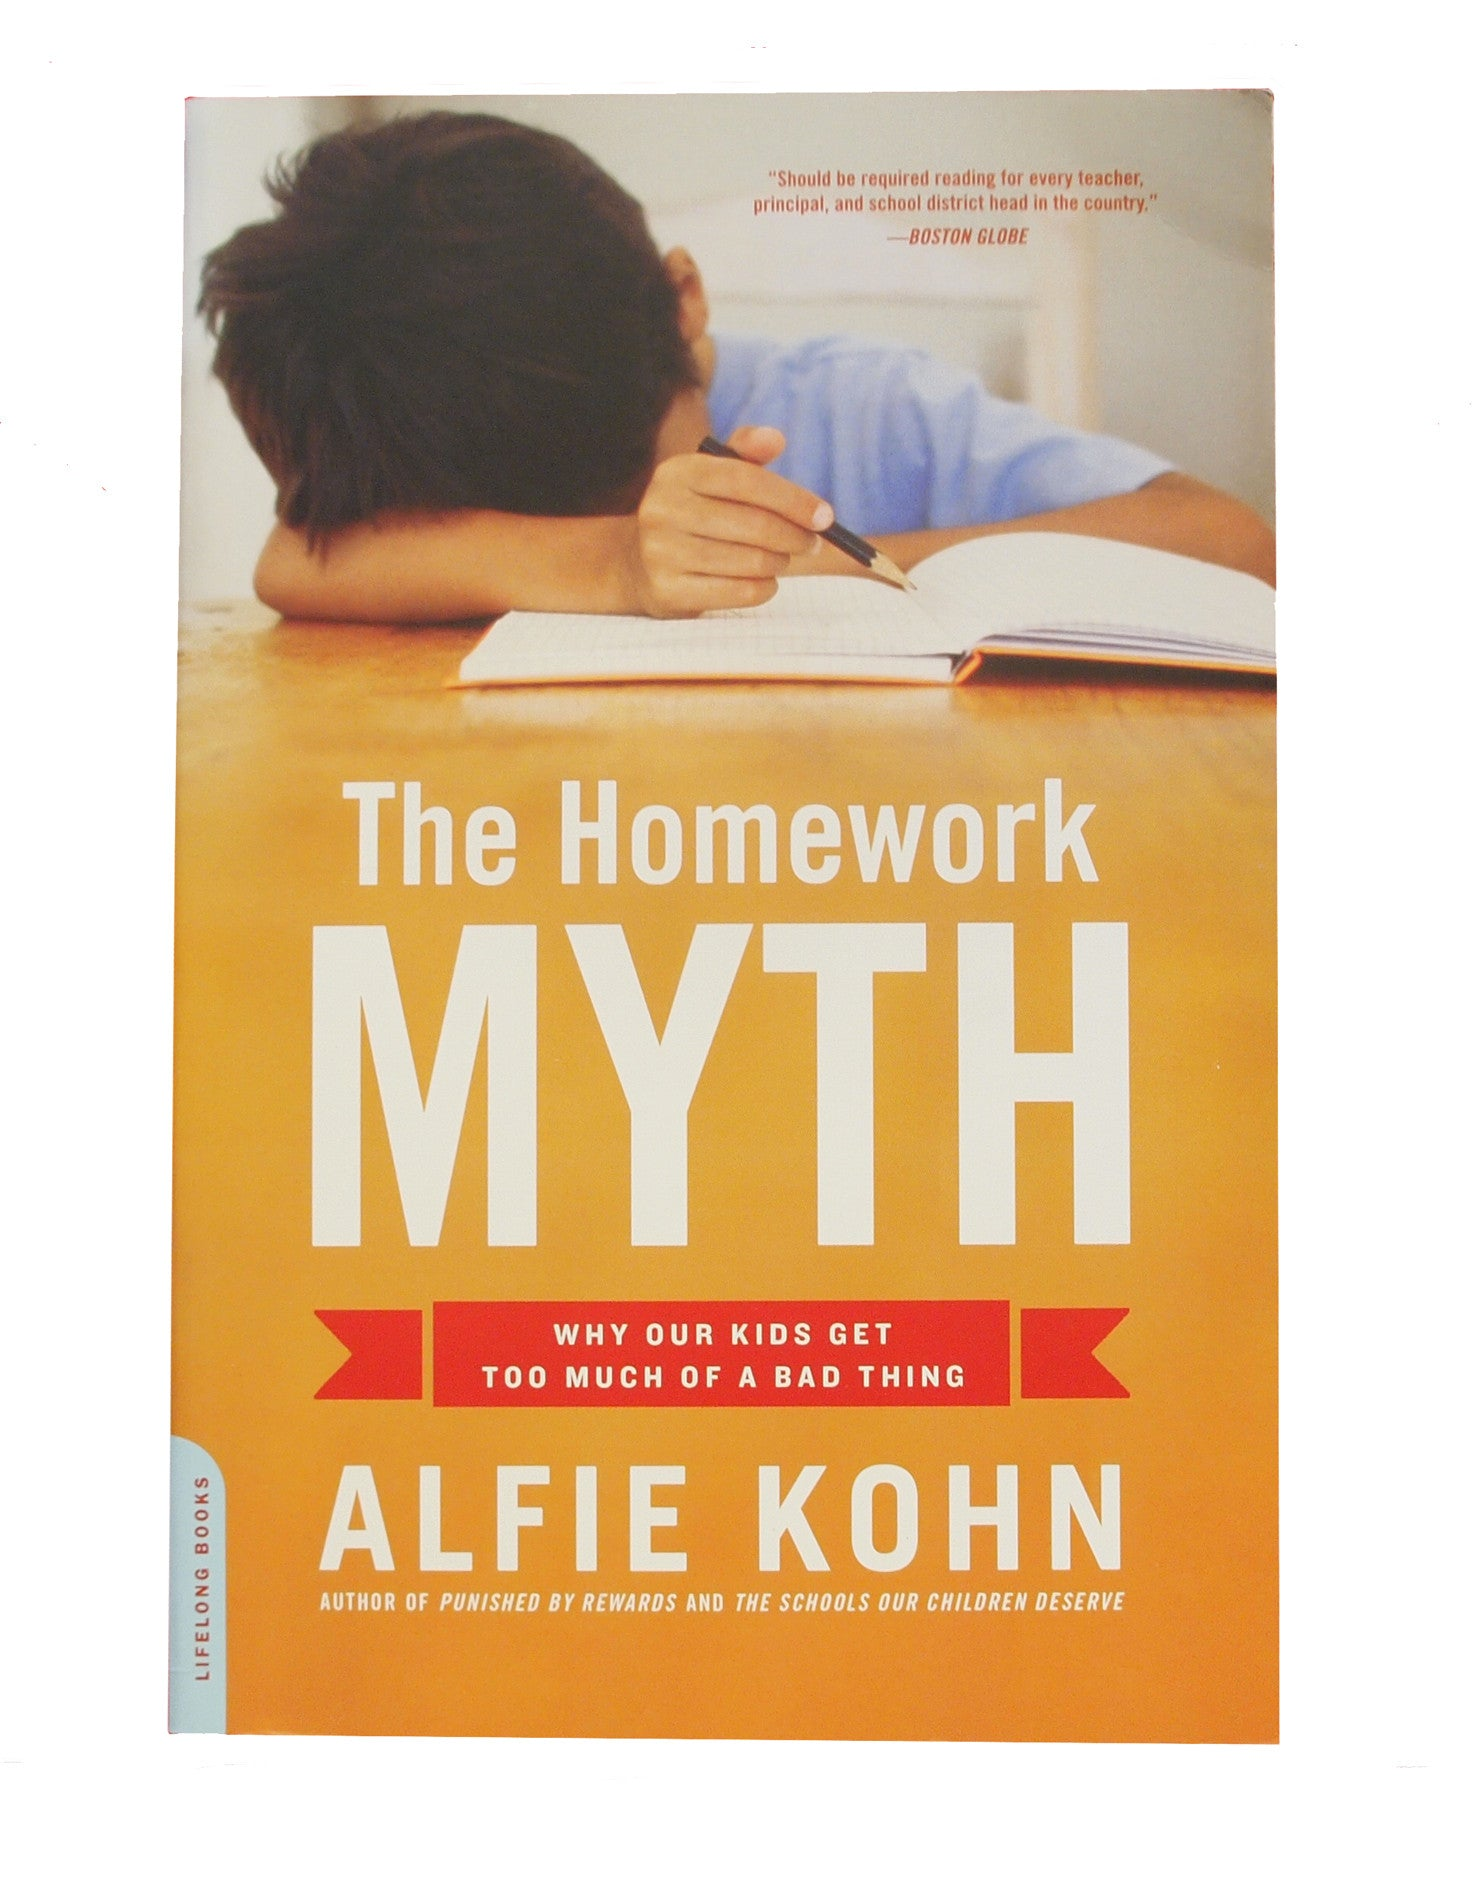 the homework myth alfie kohn summary